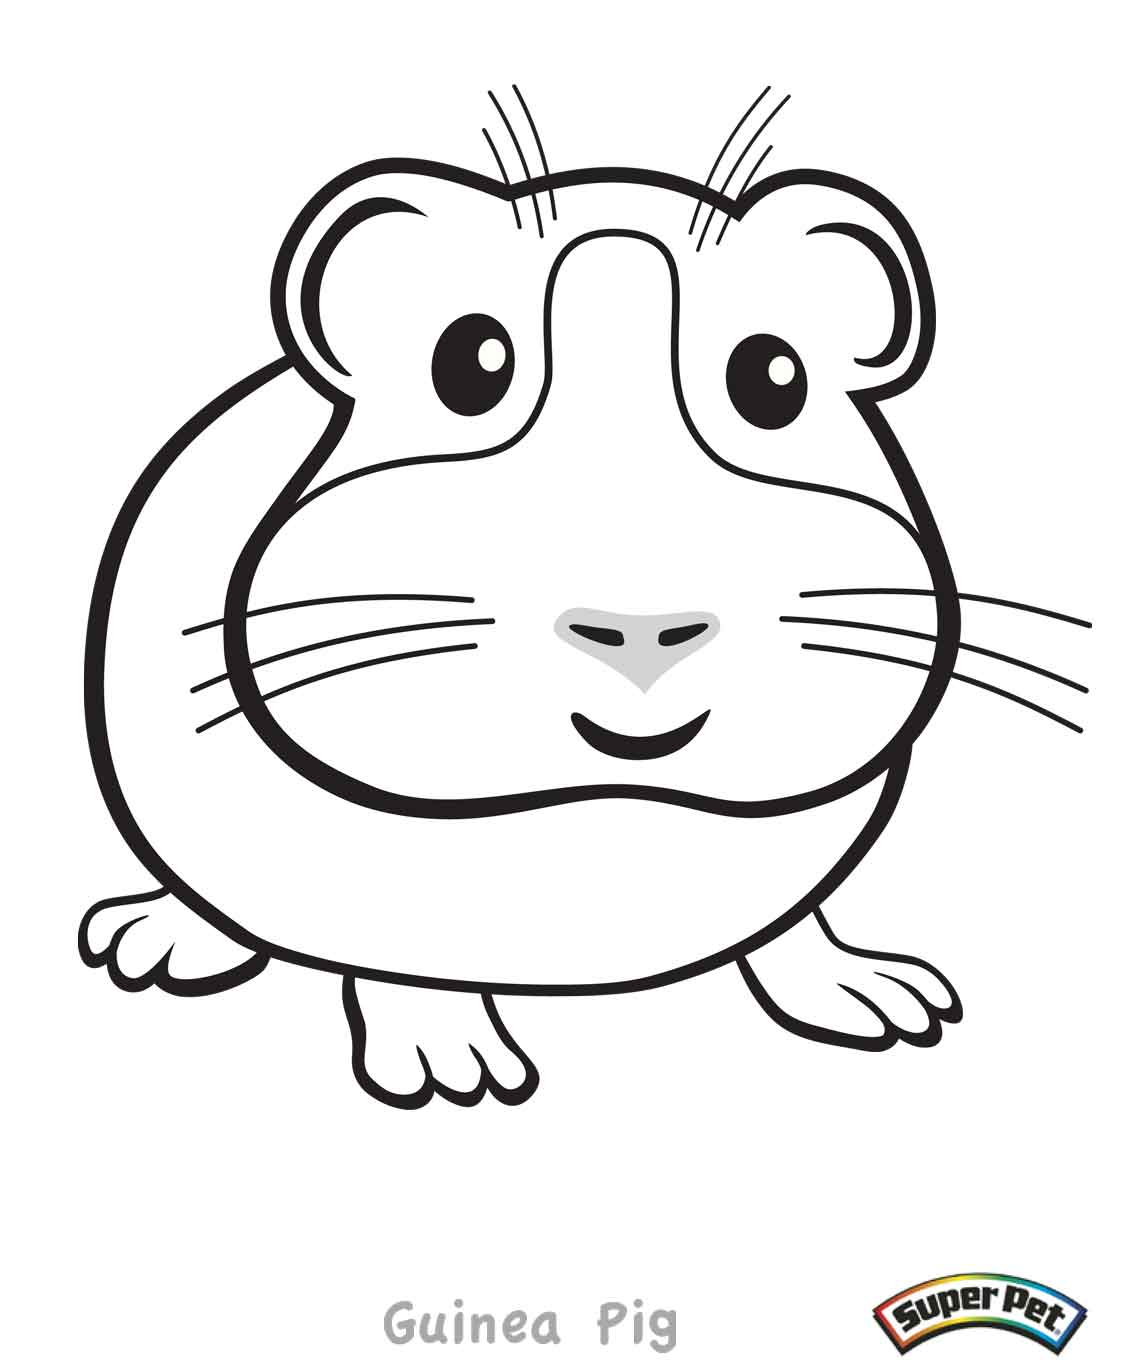 1135x1370 Guinea Pig Cartoon Coloring Pages Cute Guinea Pig Coloring Pages